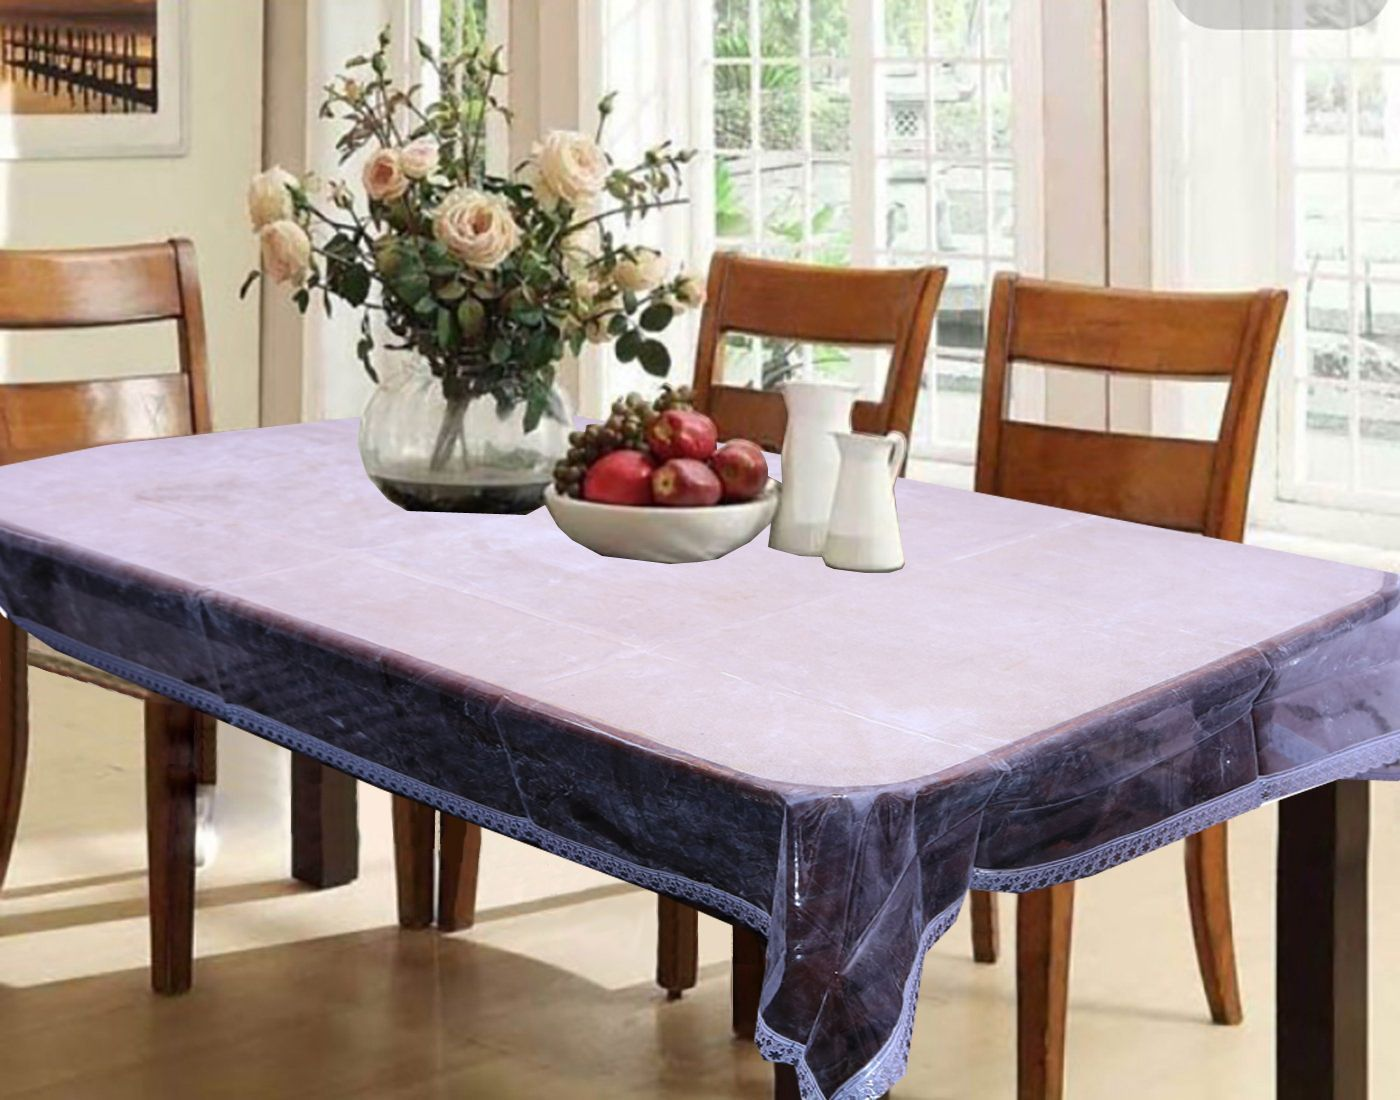 Kuber Industries Dining Table Cover Transparent Designer Silver Lace 60*90 Inches (Silver) DT325